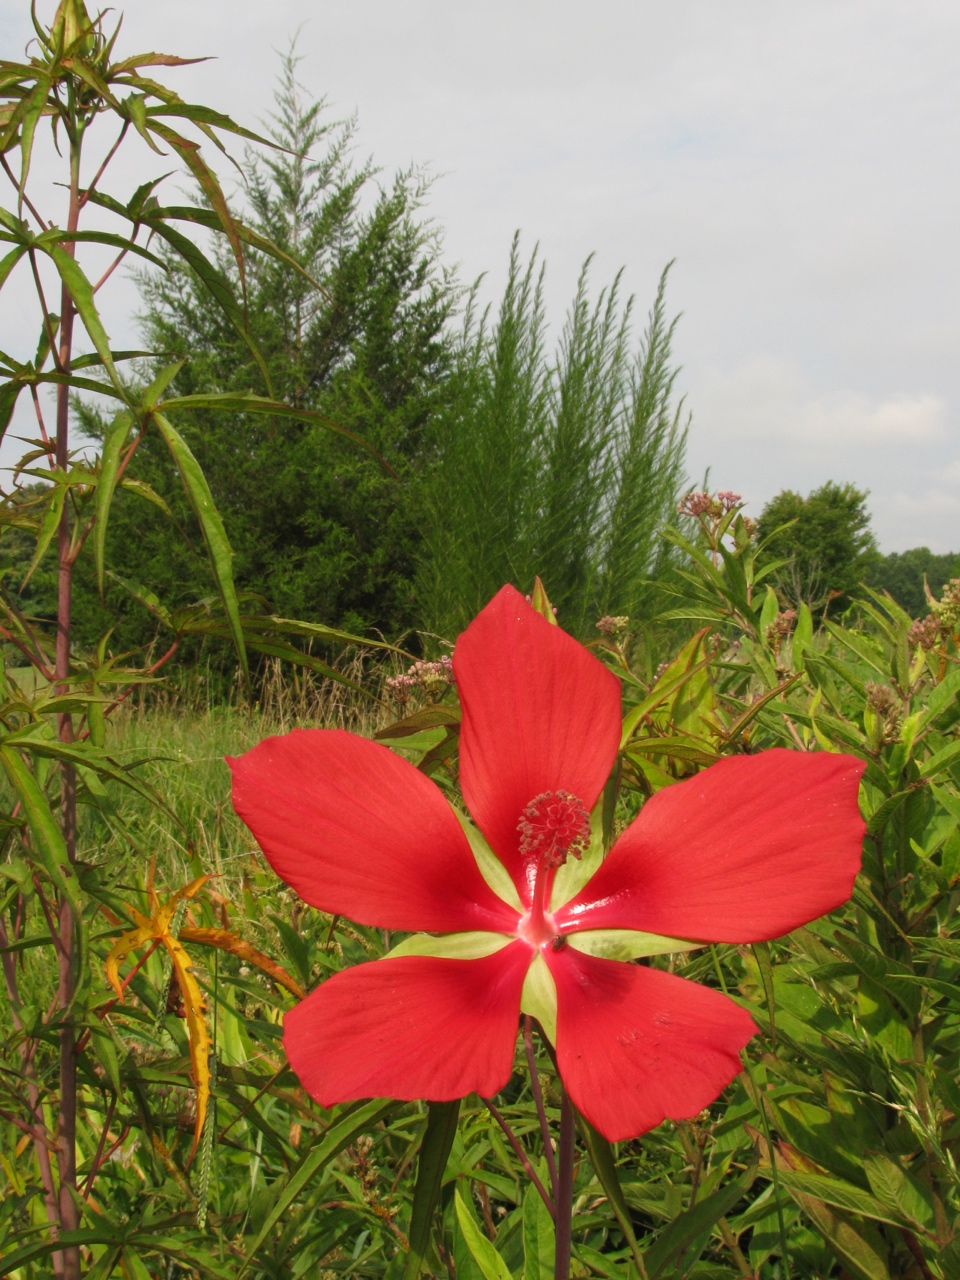 The Scientific Name is Hibiscus coccineus. You will likely hear them called Scarlet Hibiscus, Scarlet Rosemallow, Red Hibiscus. This picture shows the Beautiful, large flowers in summer of Hibiscus coccineus